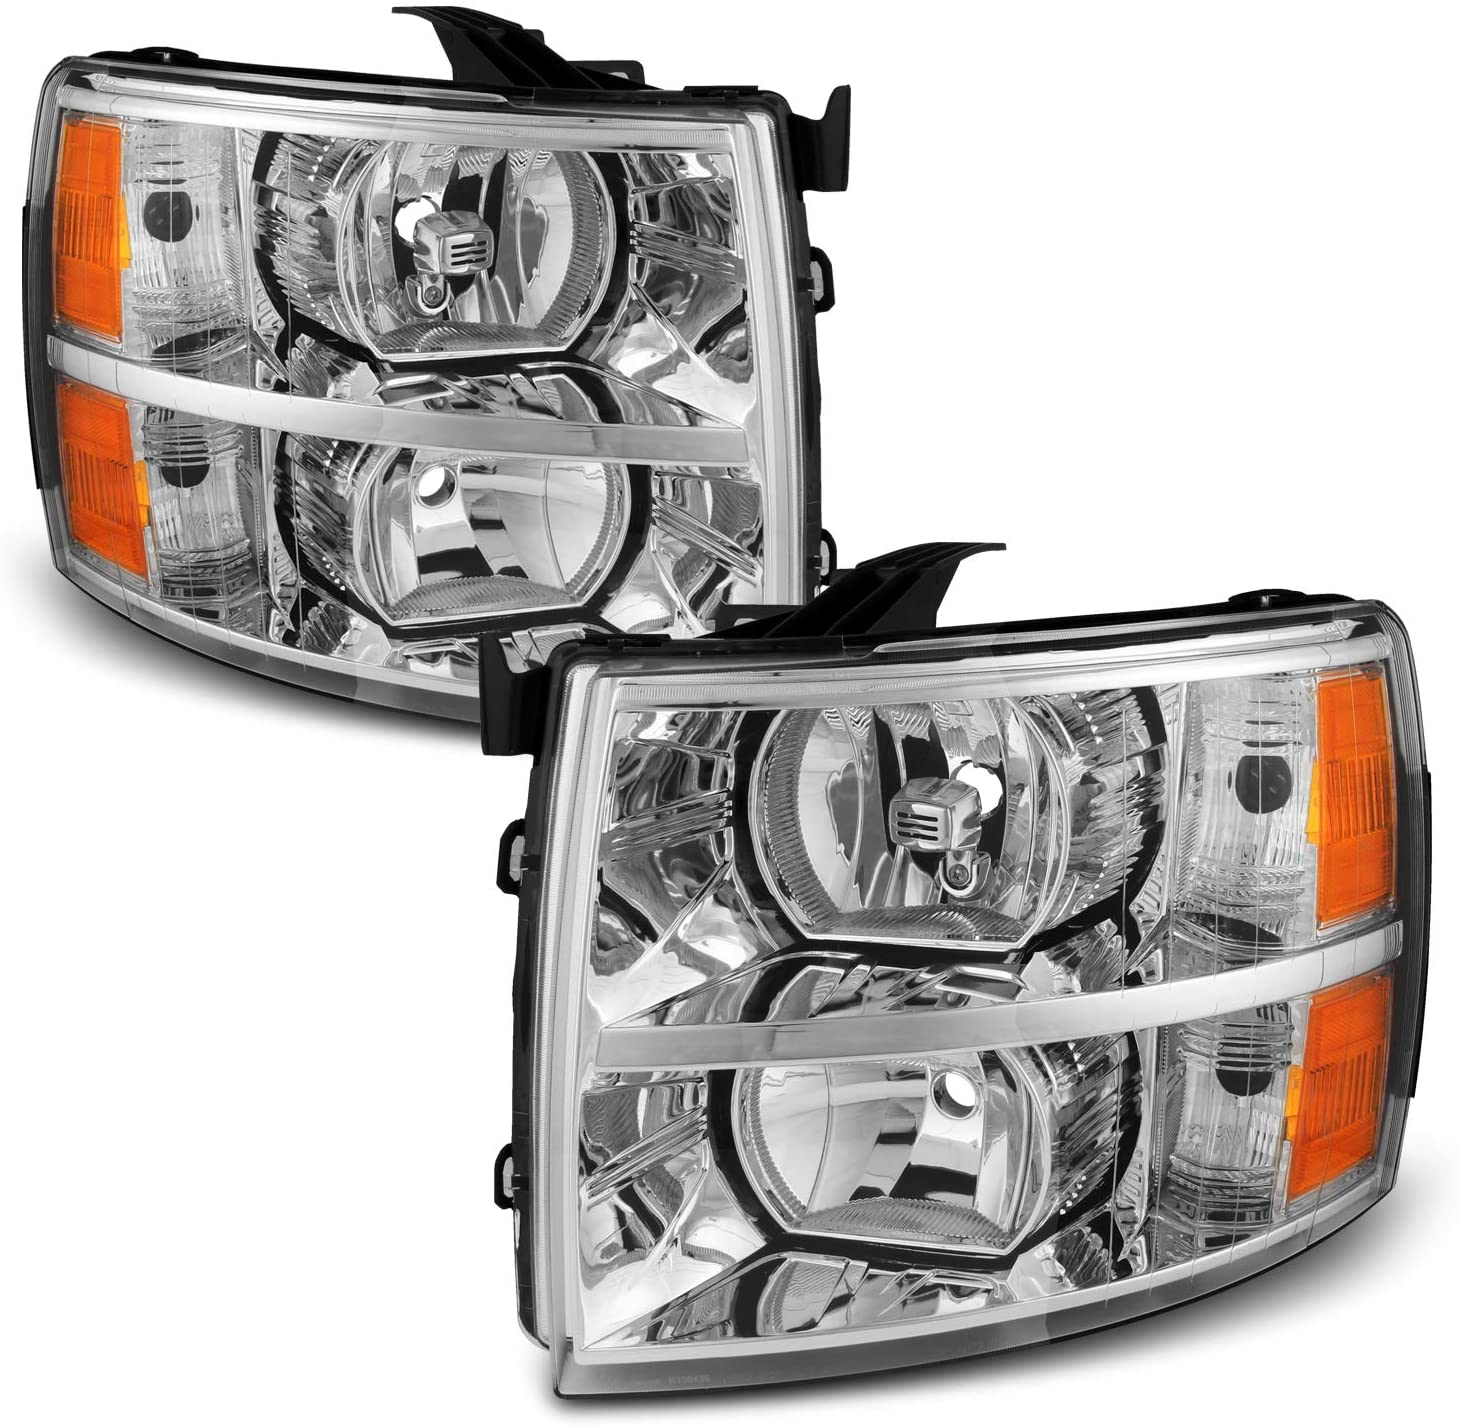 For Chevy Silverado Replacement Chrome Bezel Headlights Driver/Passenger Head Lamps Pair New